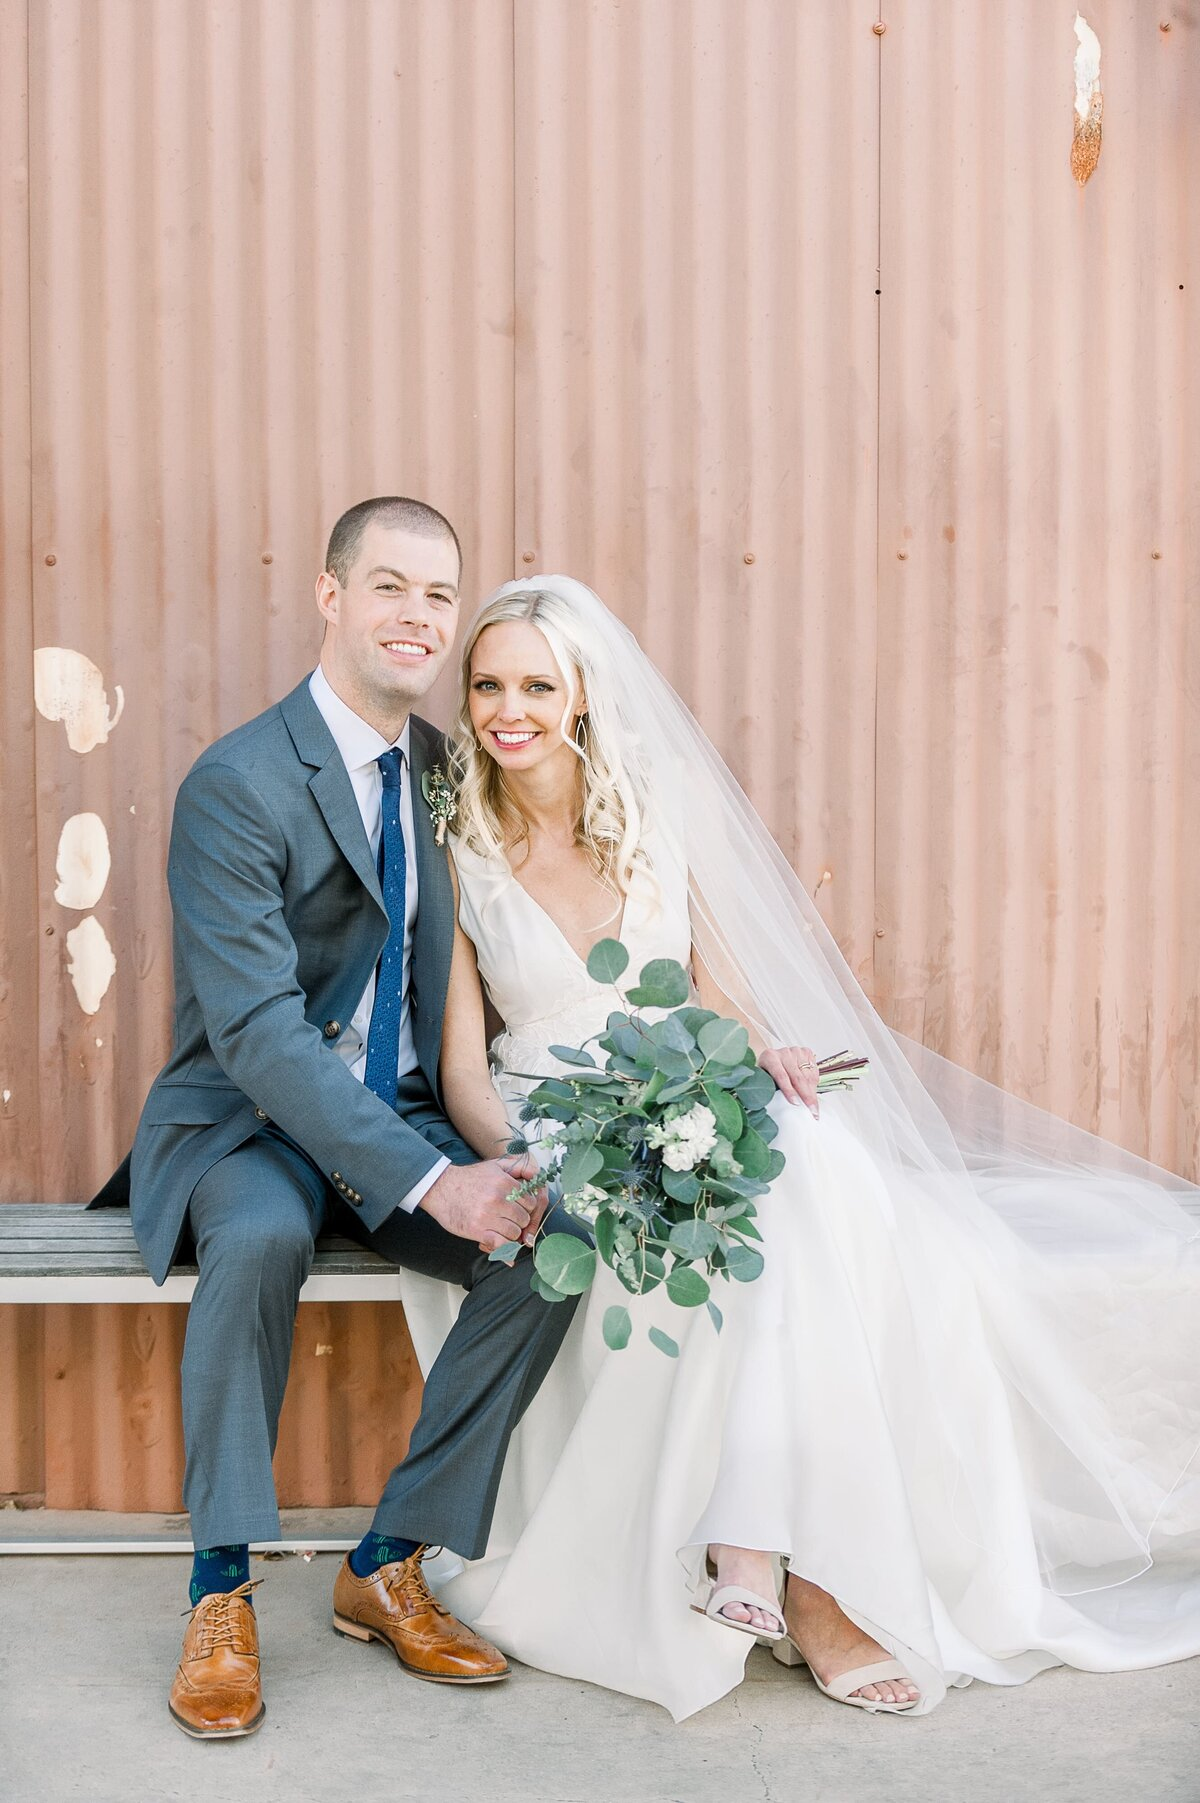 Warehouse-215-wedding-by-Leslie-Ann-Photography-00067